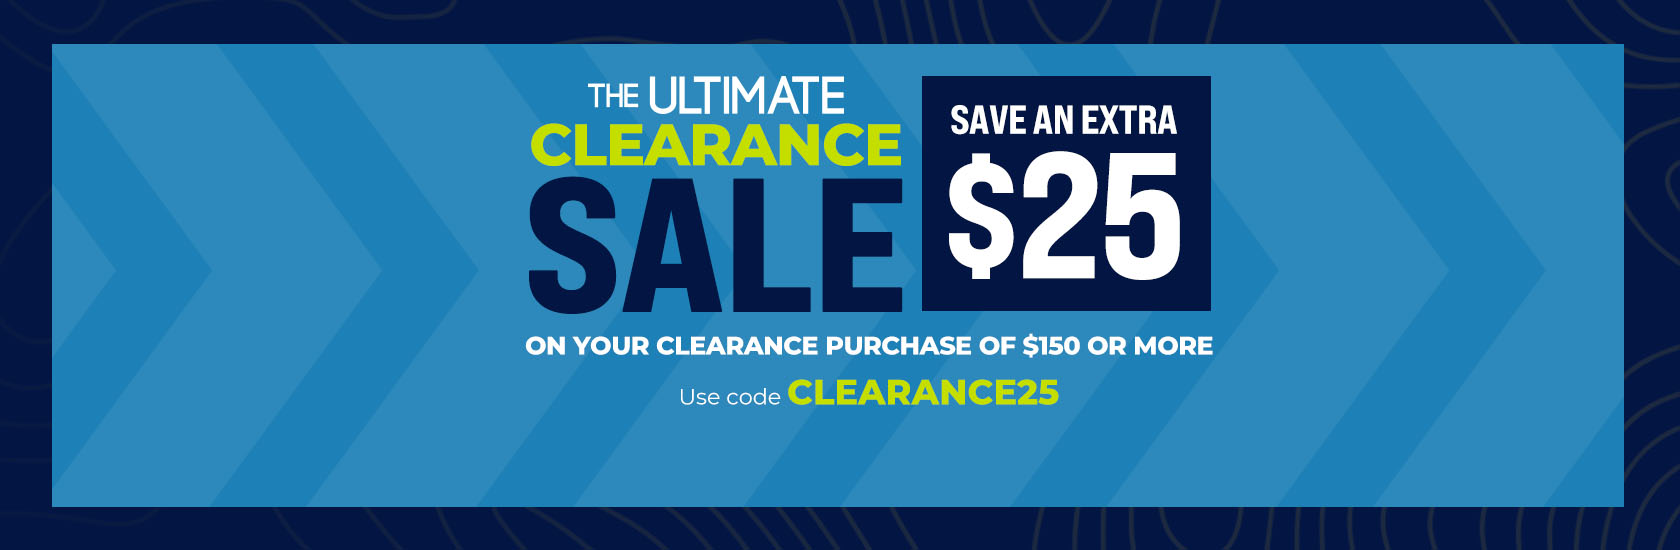 The Ultimate Clearance Sale